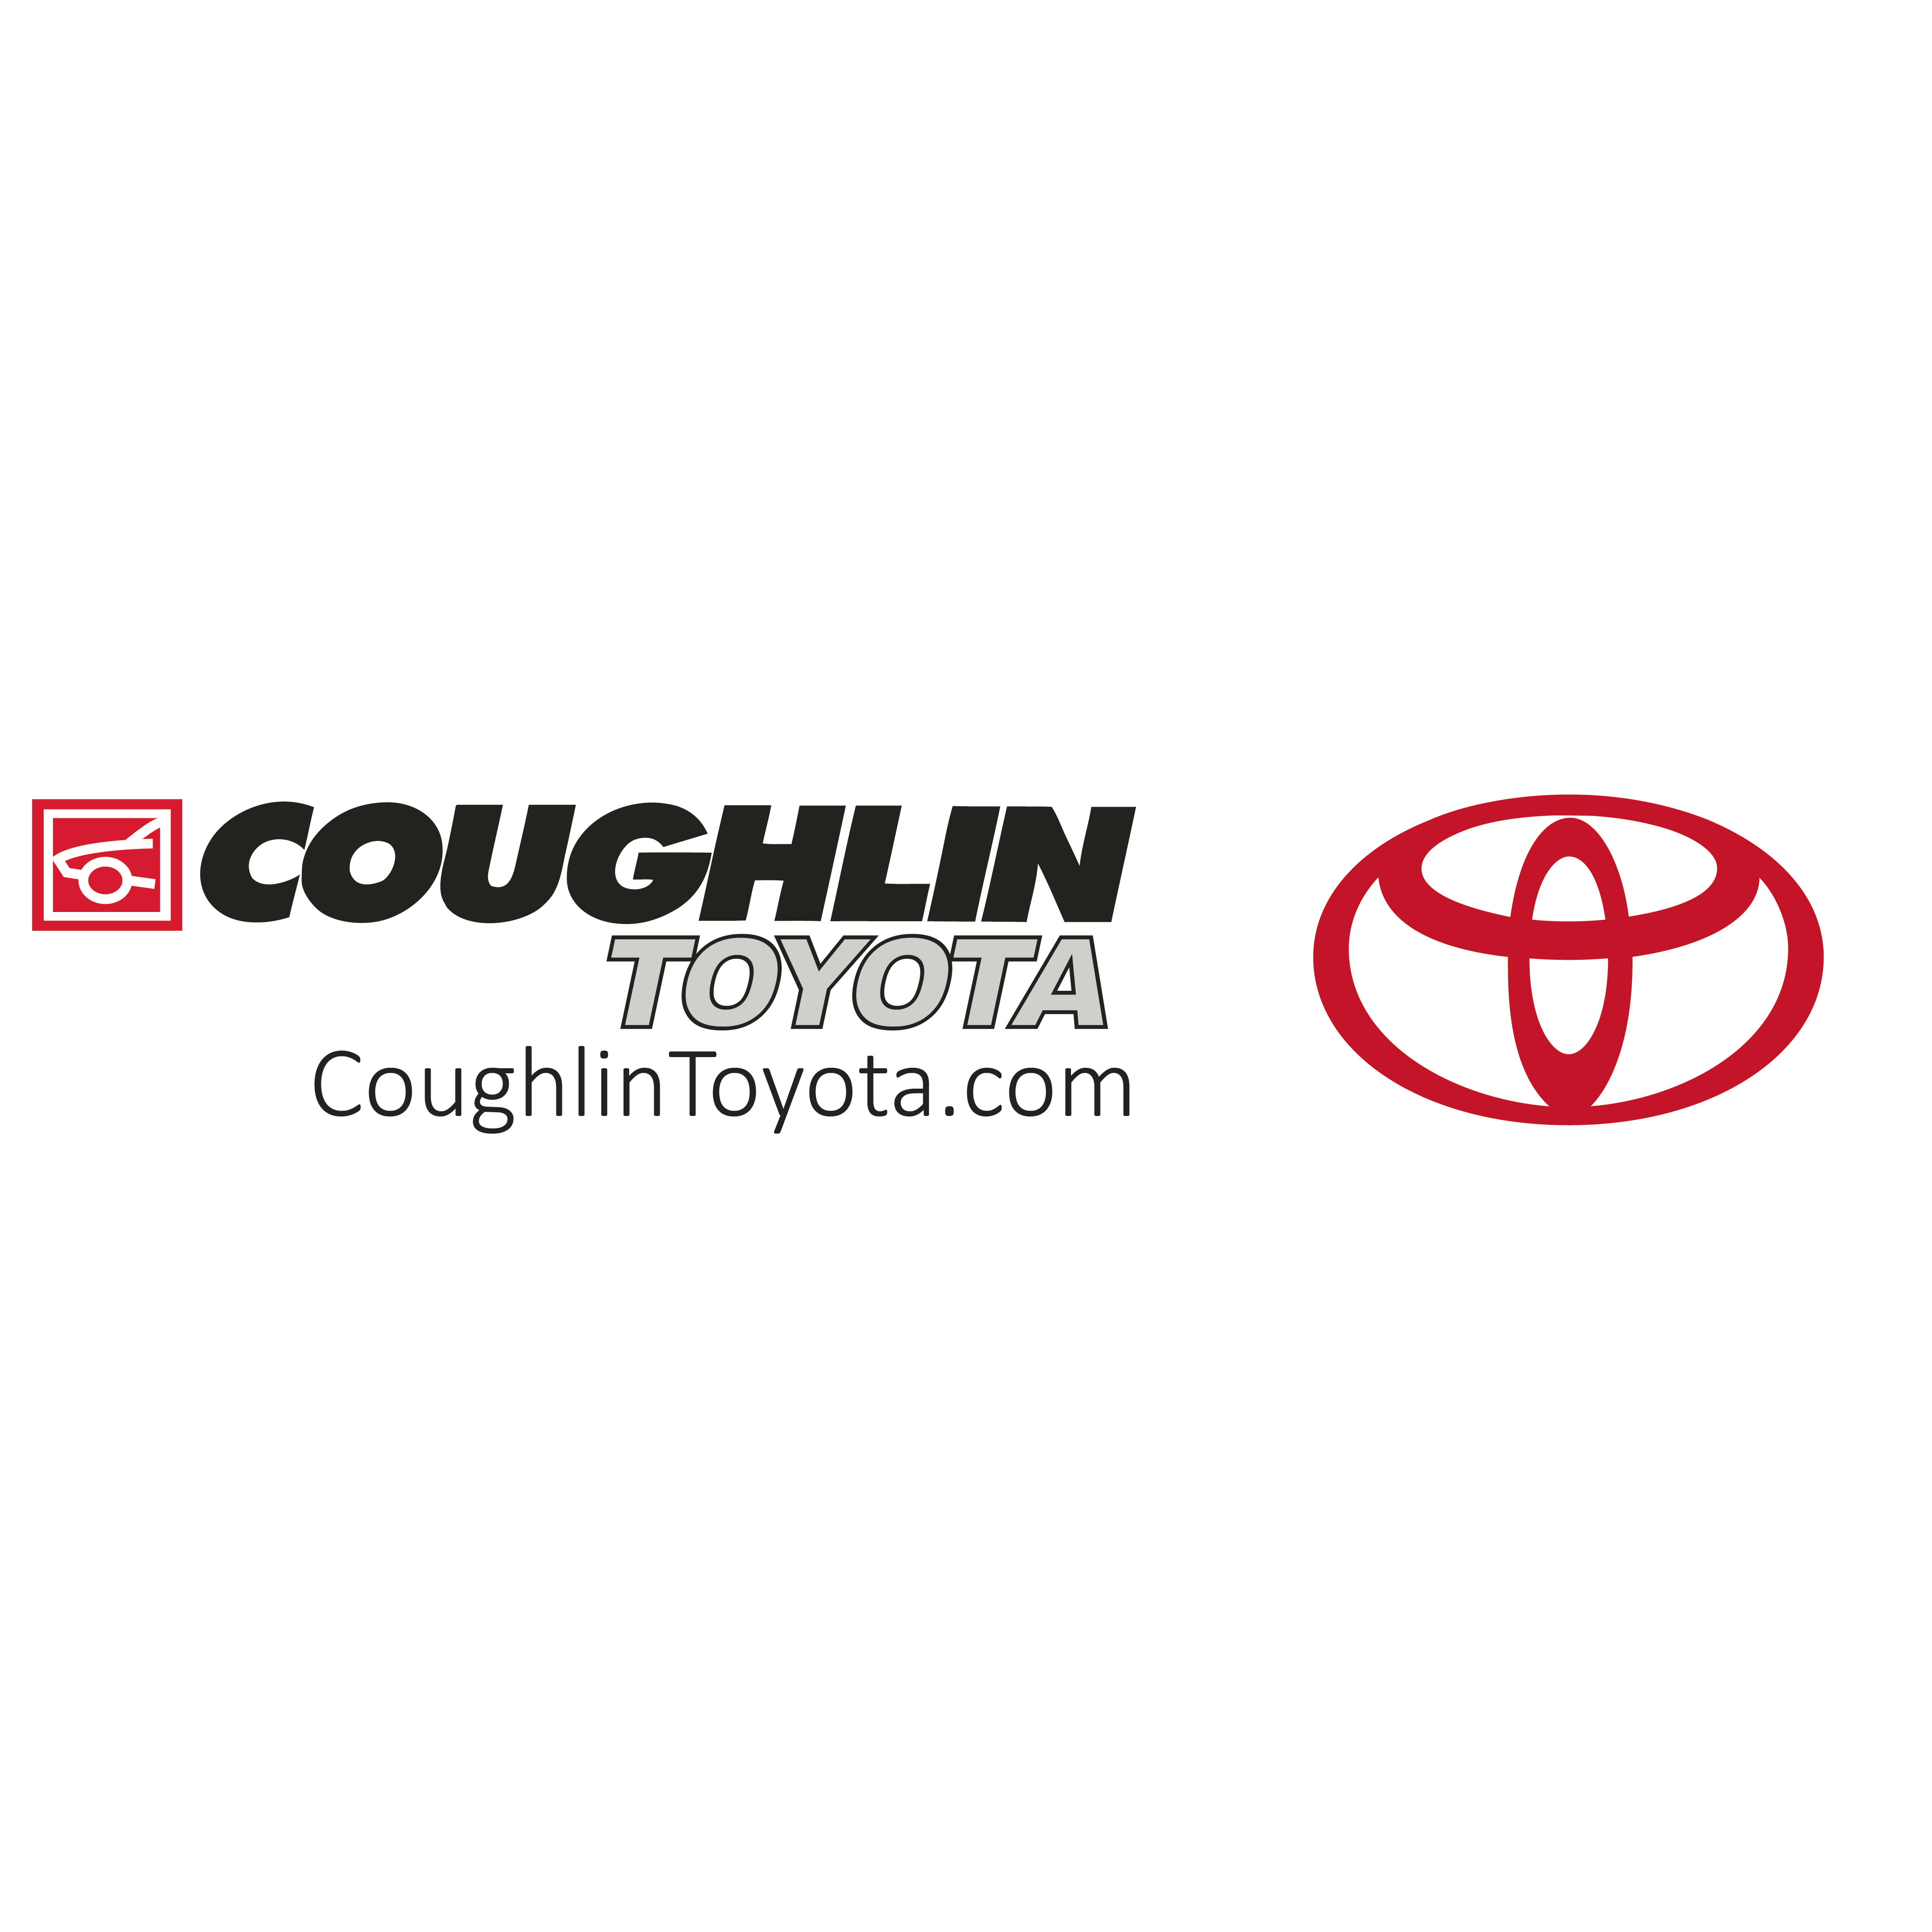 Heath ohio automotive dealers and gasoline service for Coughlin motors newark ohio